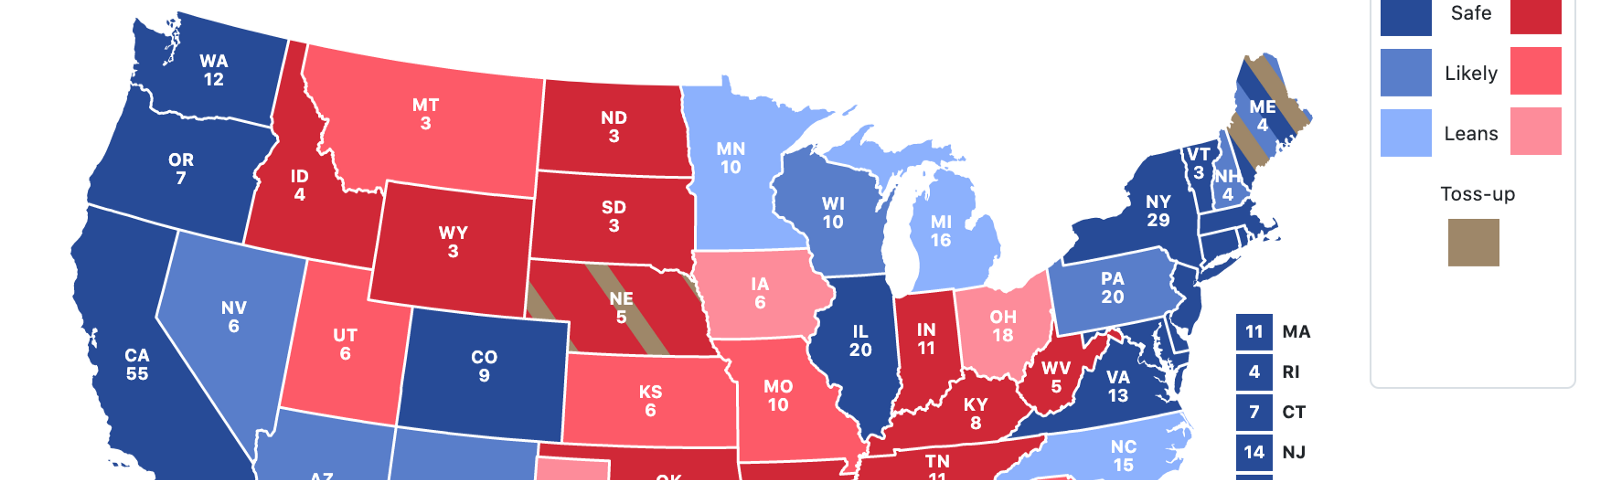 National state by state likelihood of Trump vs Biden winning Electoral College votes